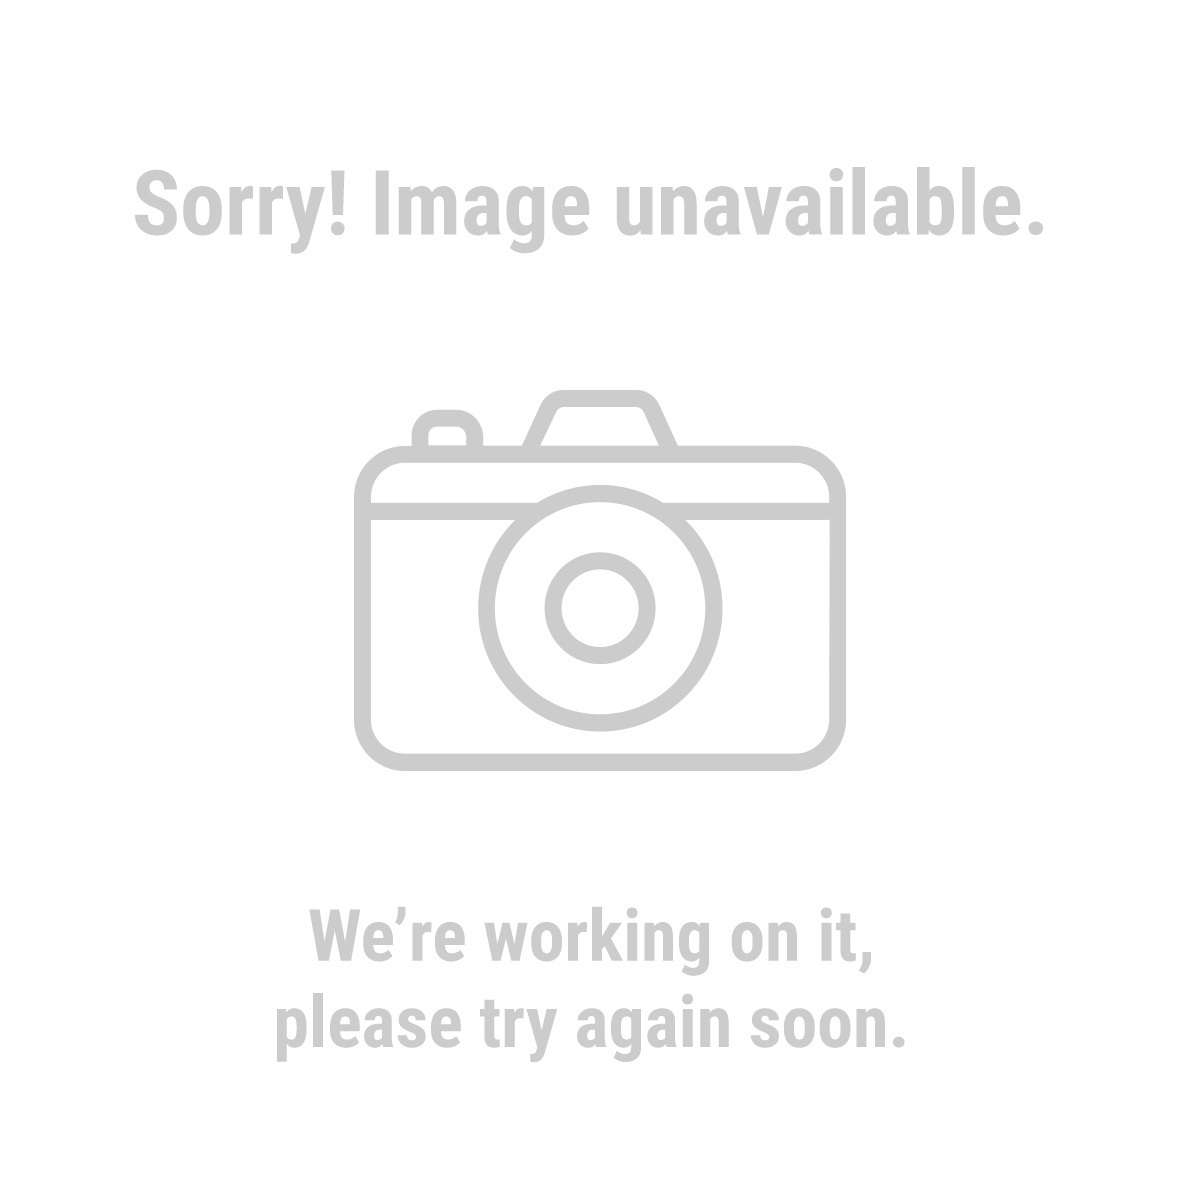 Wood lathes for sale australia